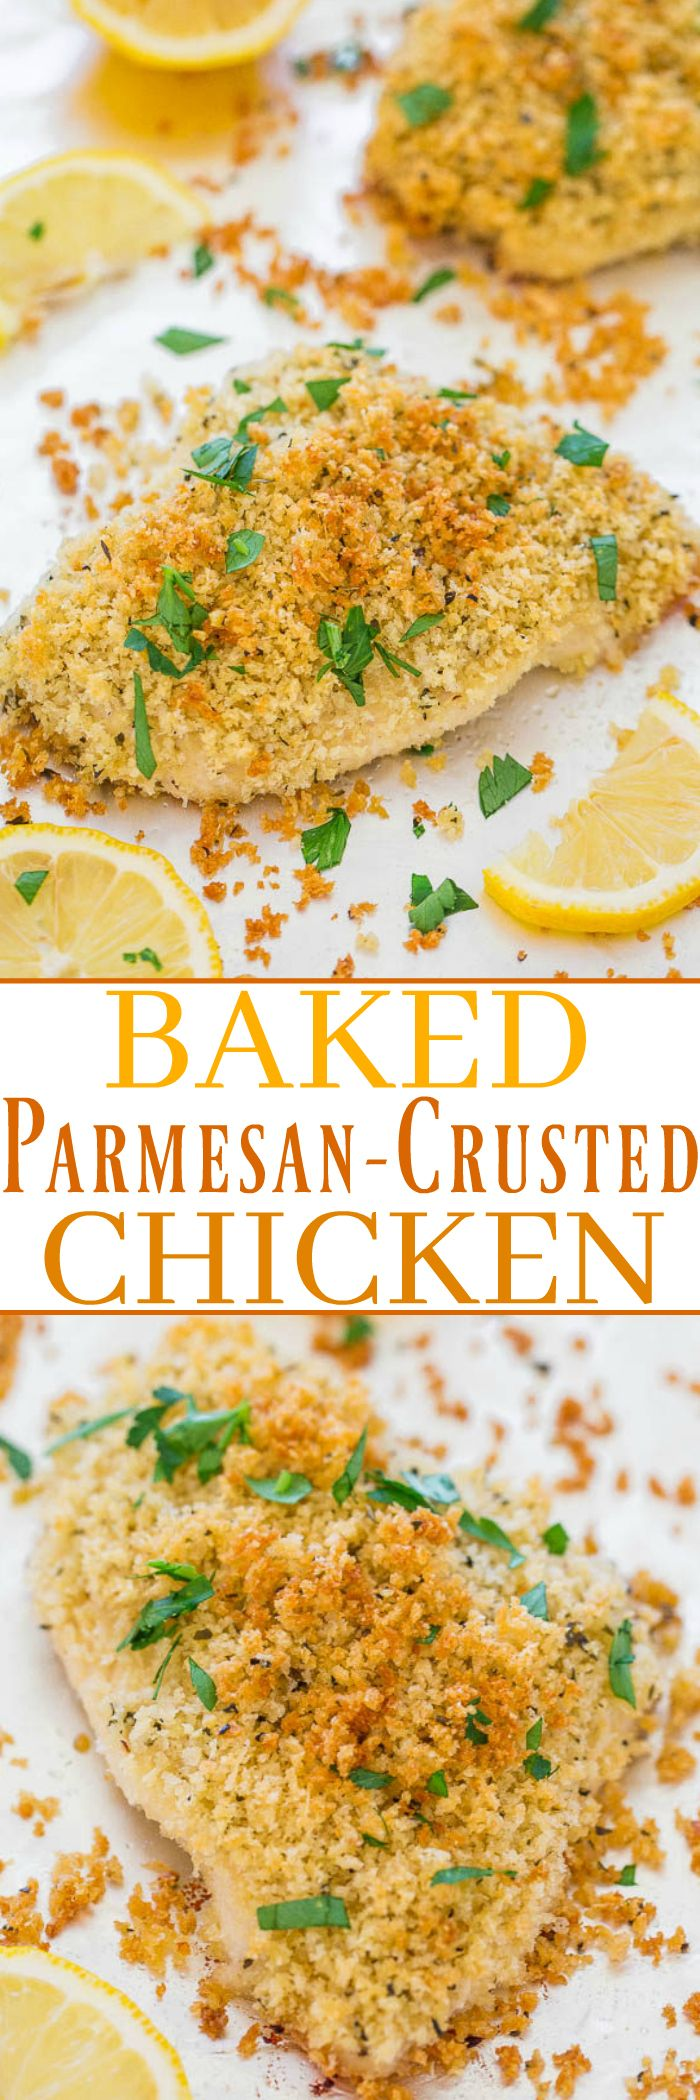 Baked Parmesan-Crusted Chicken - You'd swear this chicken was fried but it's baked!! The interior is so tender, juicy, and moist while the exterior is EXTRA CRISPY!! Easy, ready in 25 minutes, and SO GOOD!!